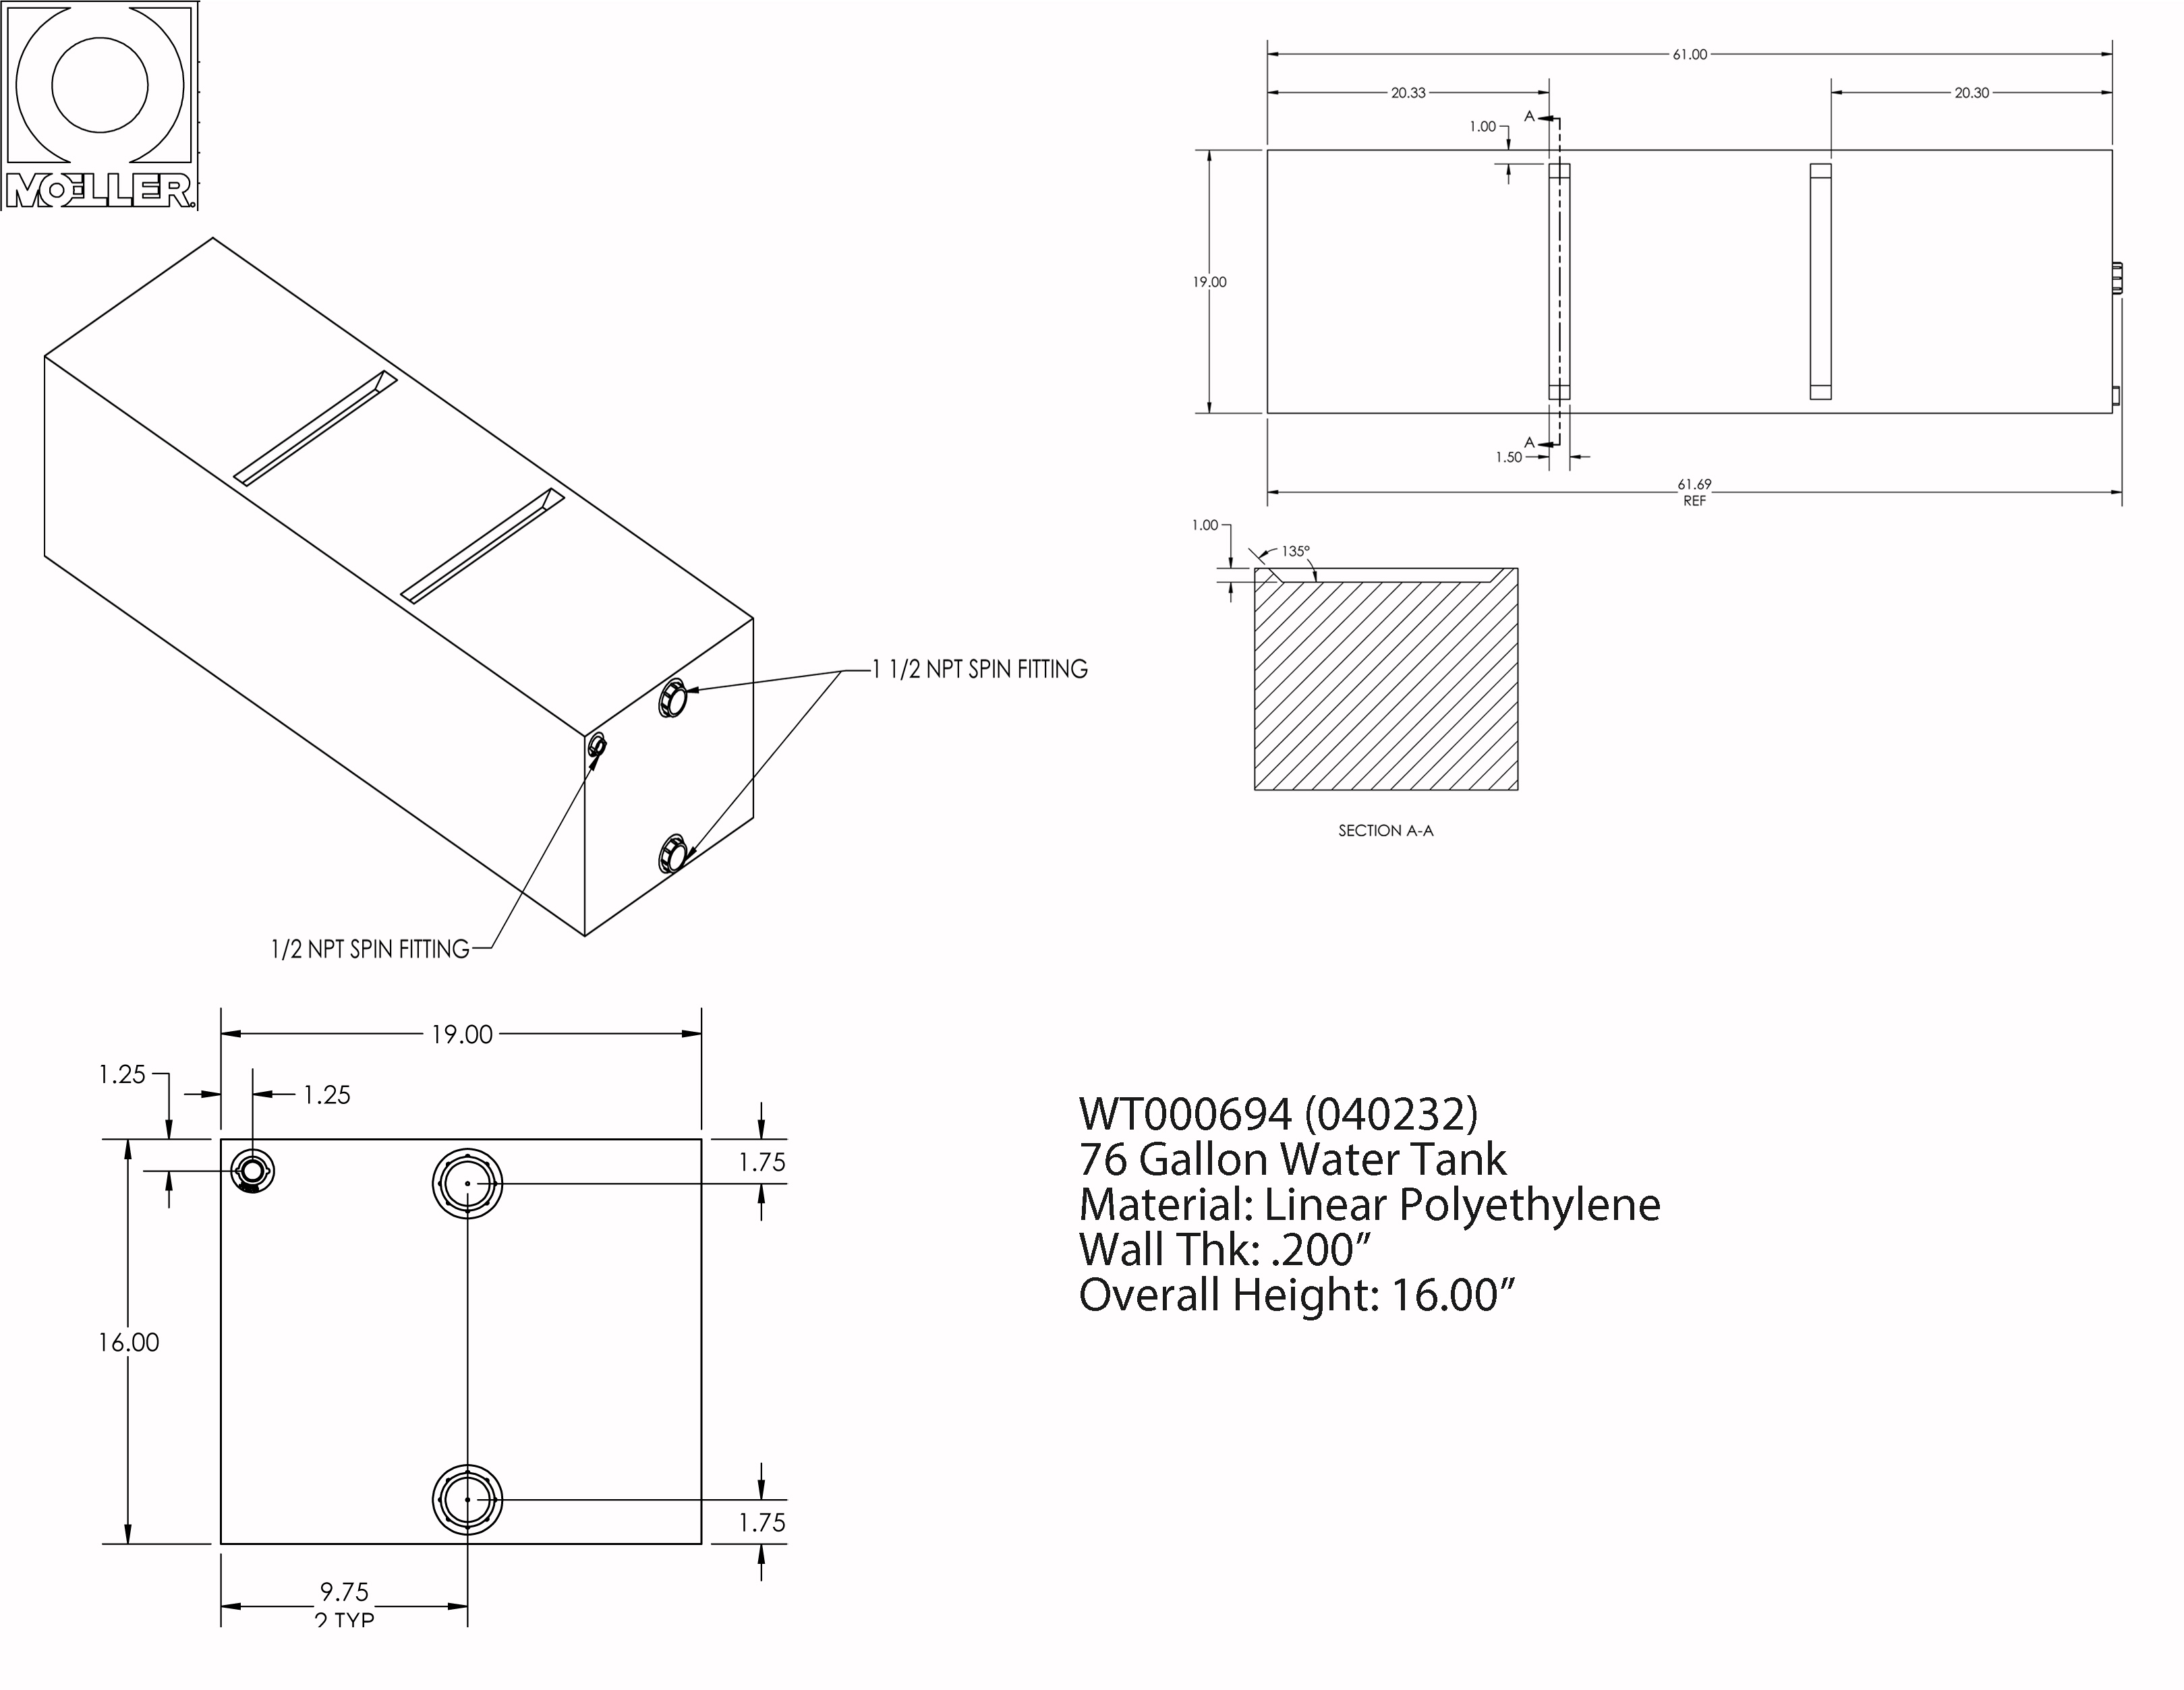 76 Gallon Rectangular Shaped Waste/Water Tank, 61″x19″x16″, WT000694 (040232)